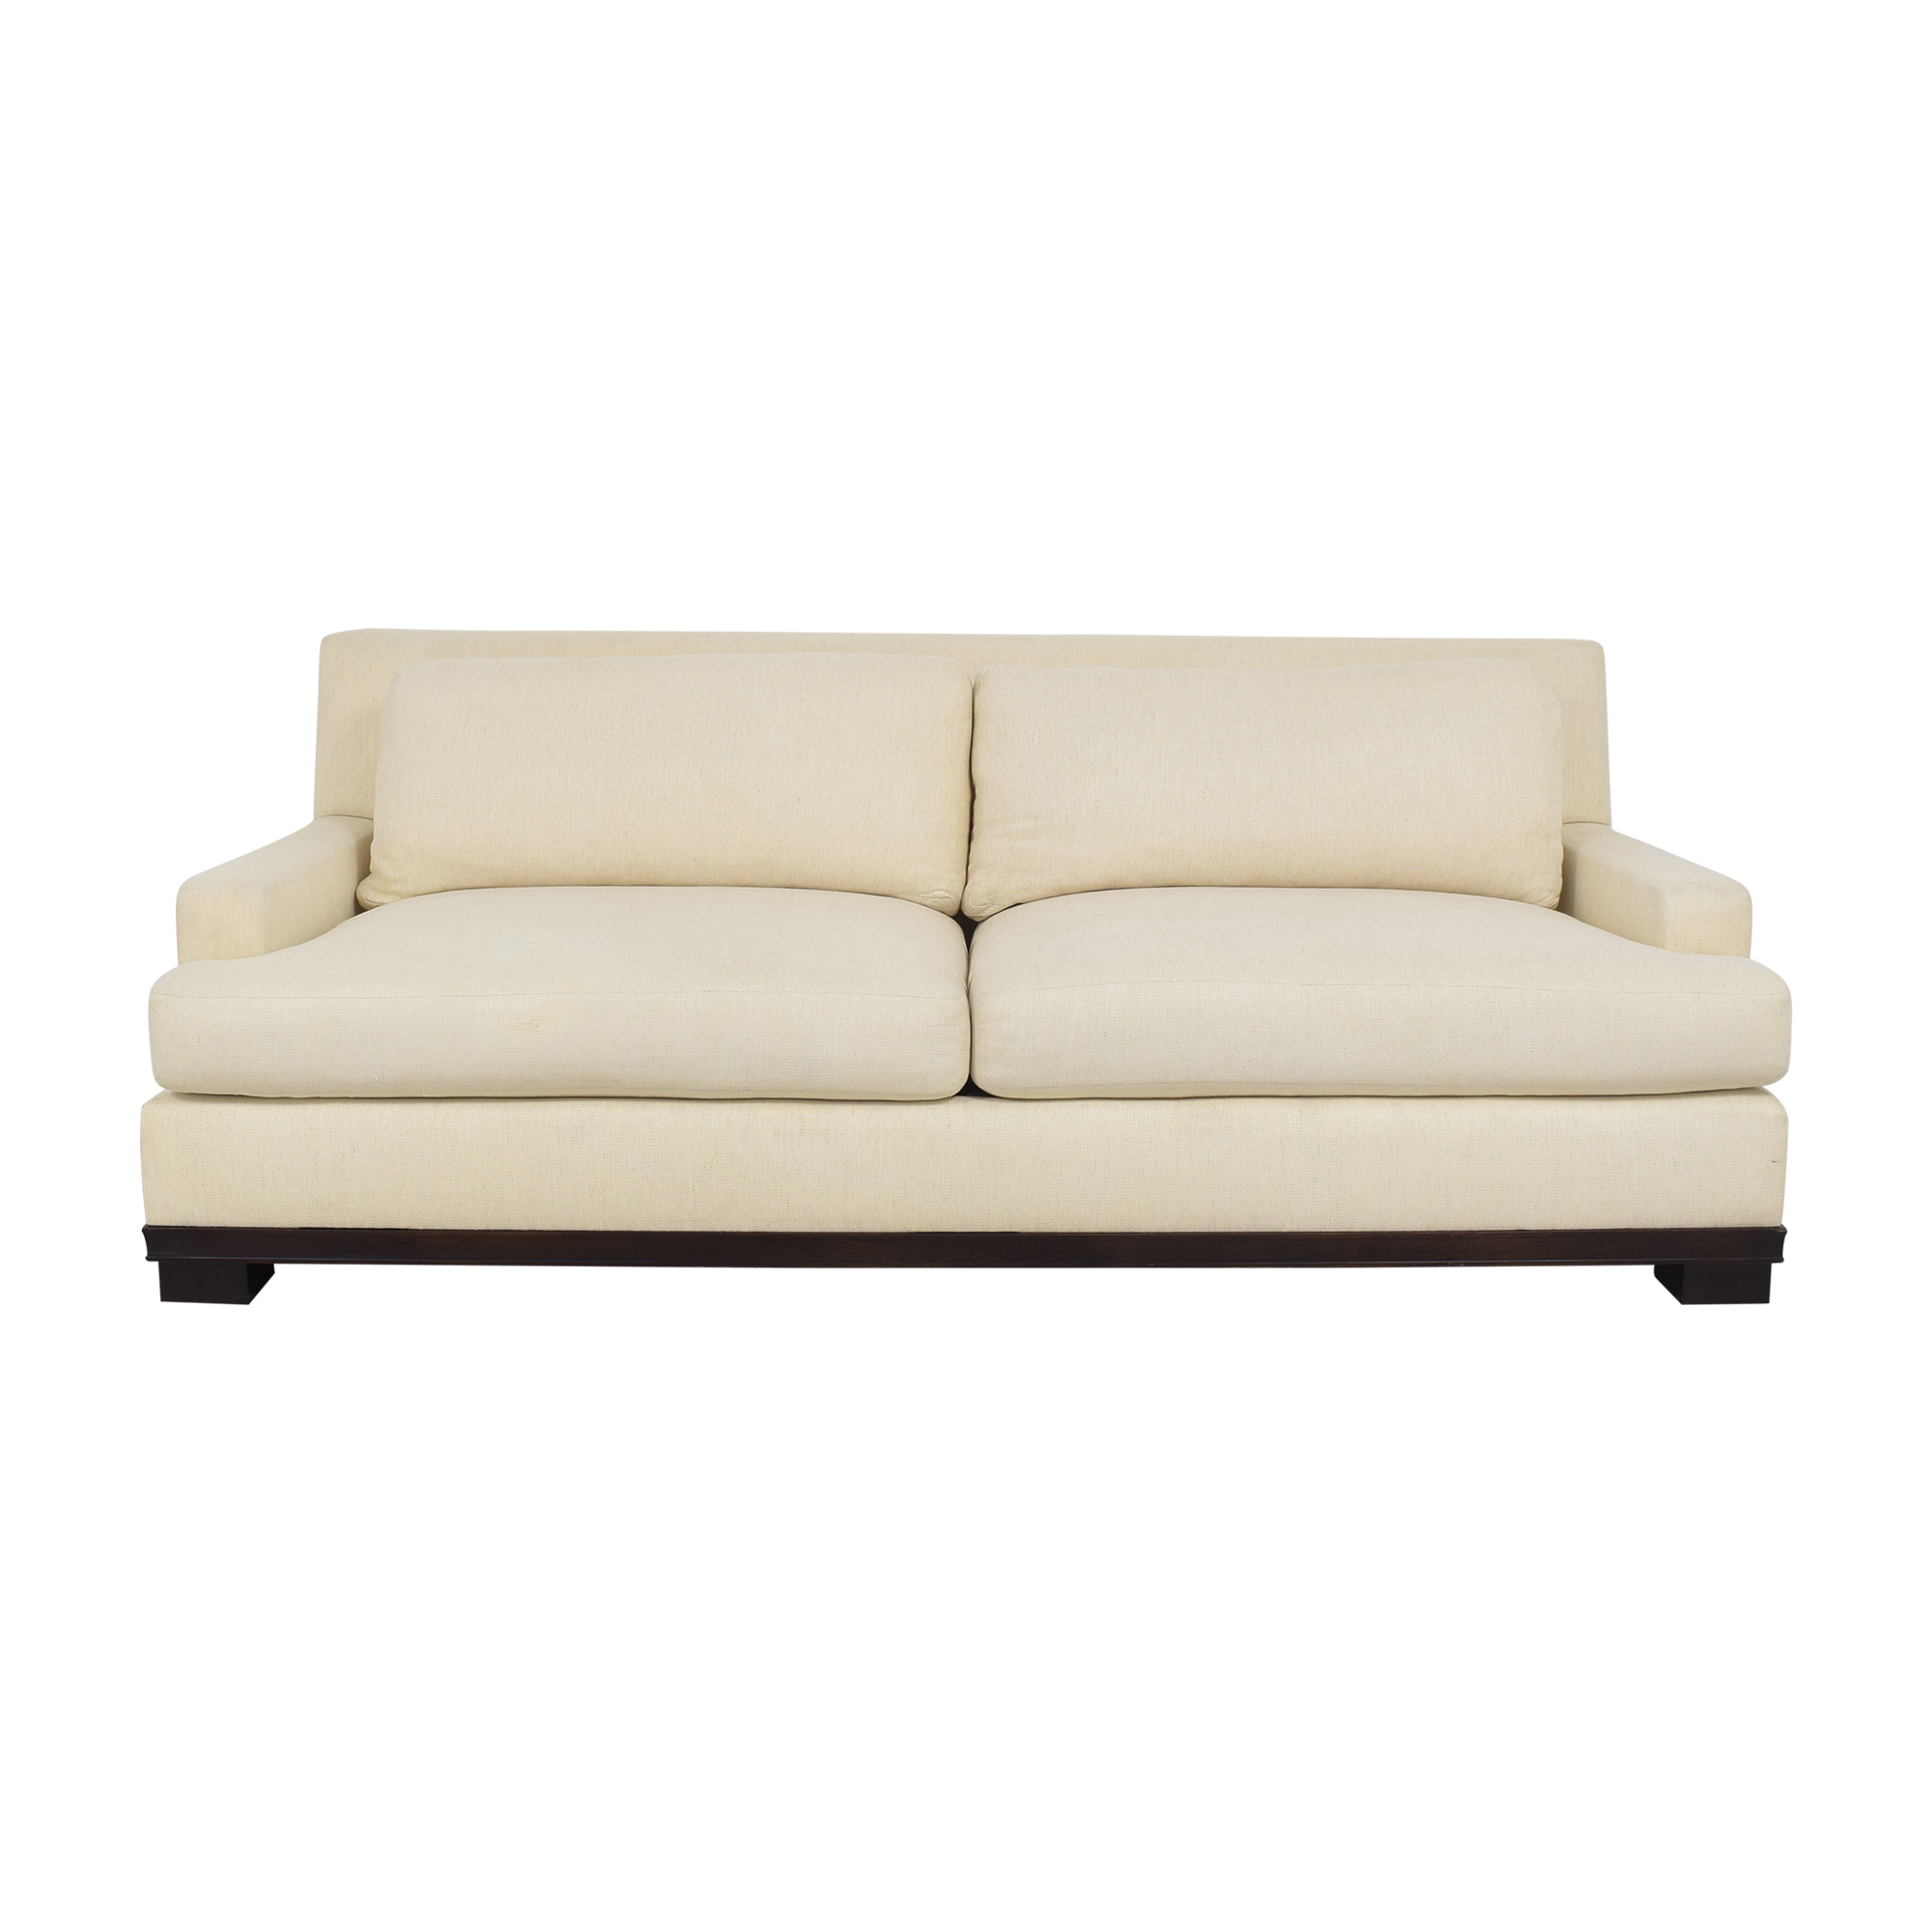 Bloomingdale's Bloomingdale's by Barbara Barry Oval Collection Sofa price